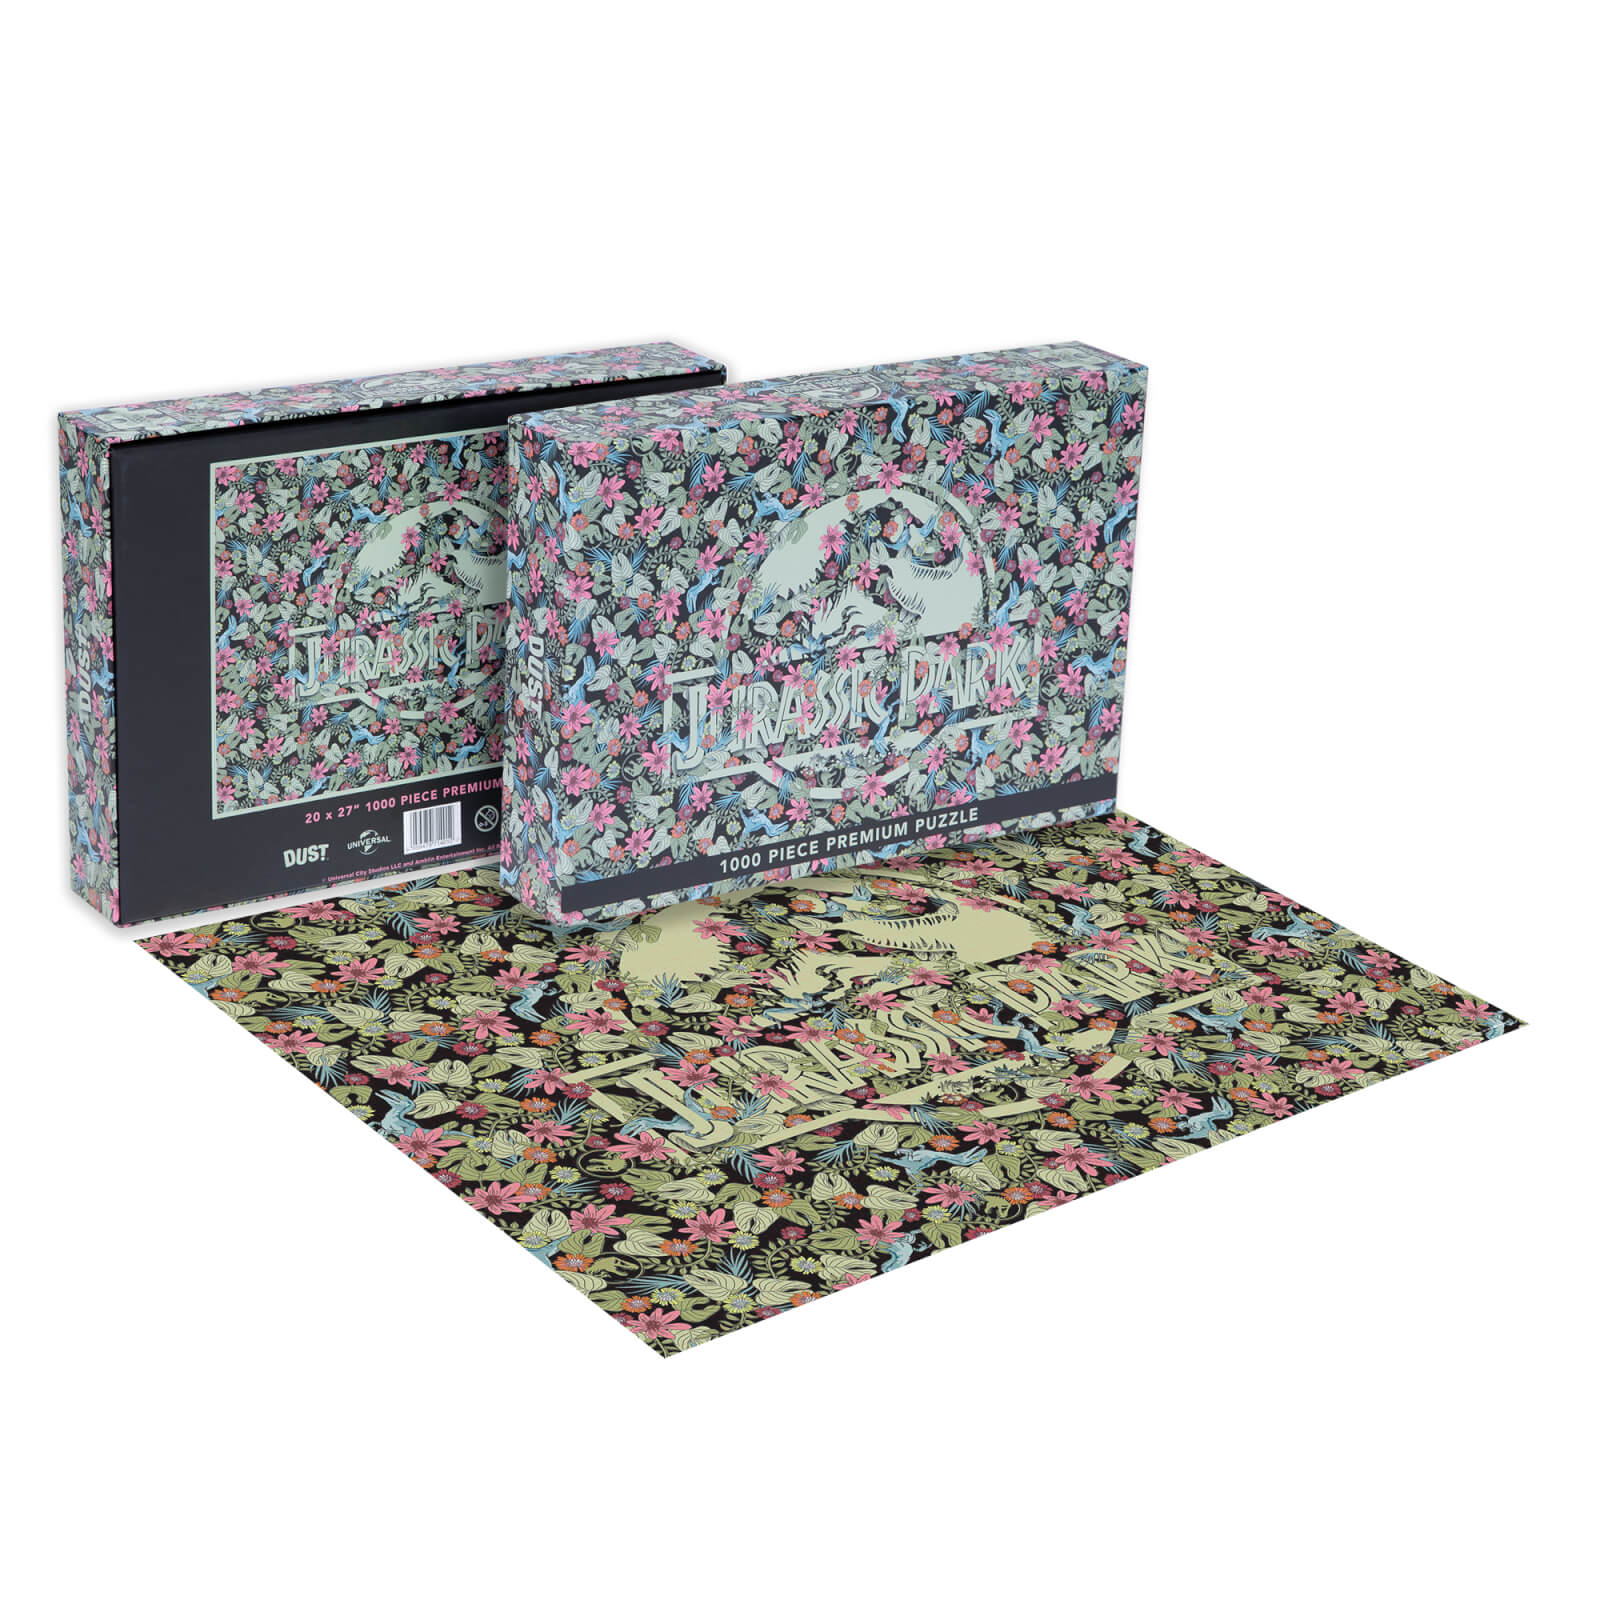 Image of Dust! Jurassic Park Clever Girl Impossible 1000pc Puzzle - Zavvi Exclusive